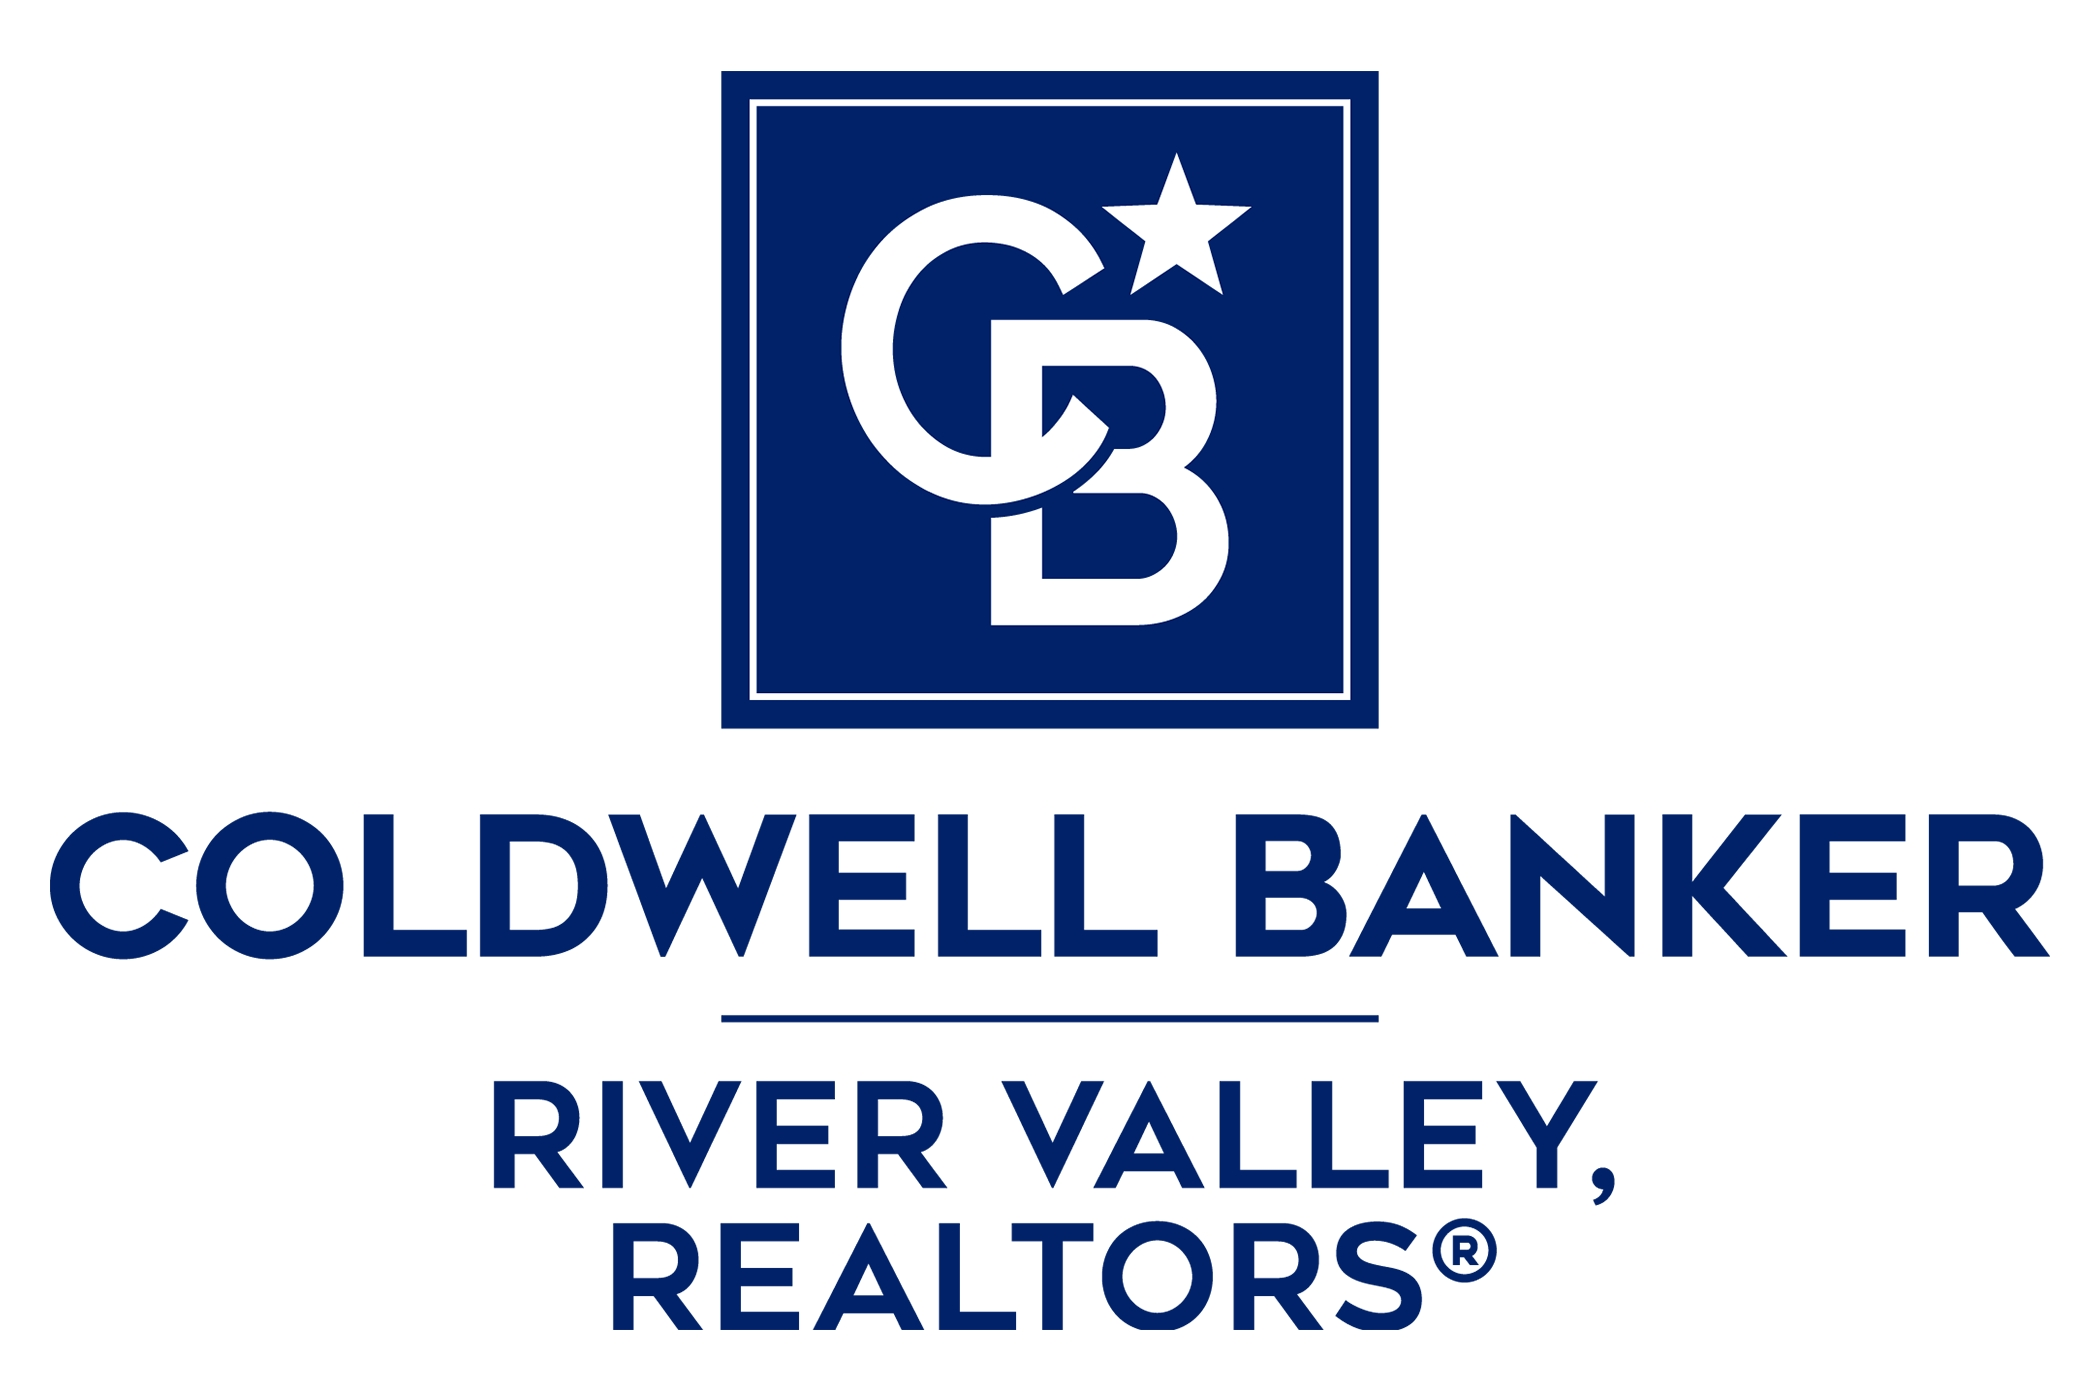 Steve Murray - Coldwell Banker River Valley, REALTORS